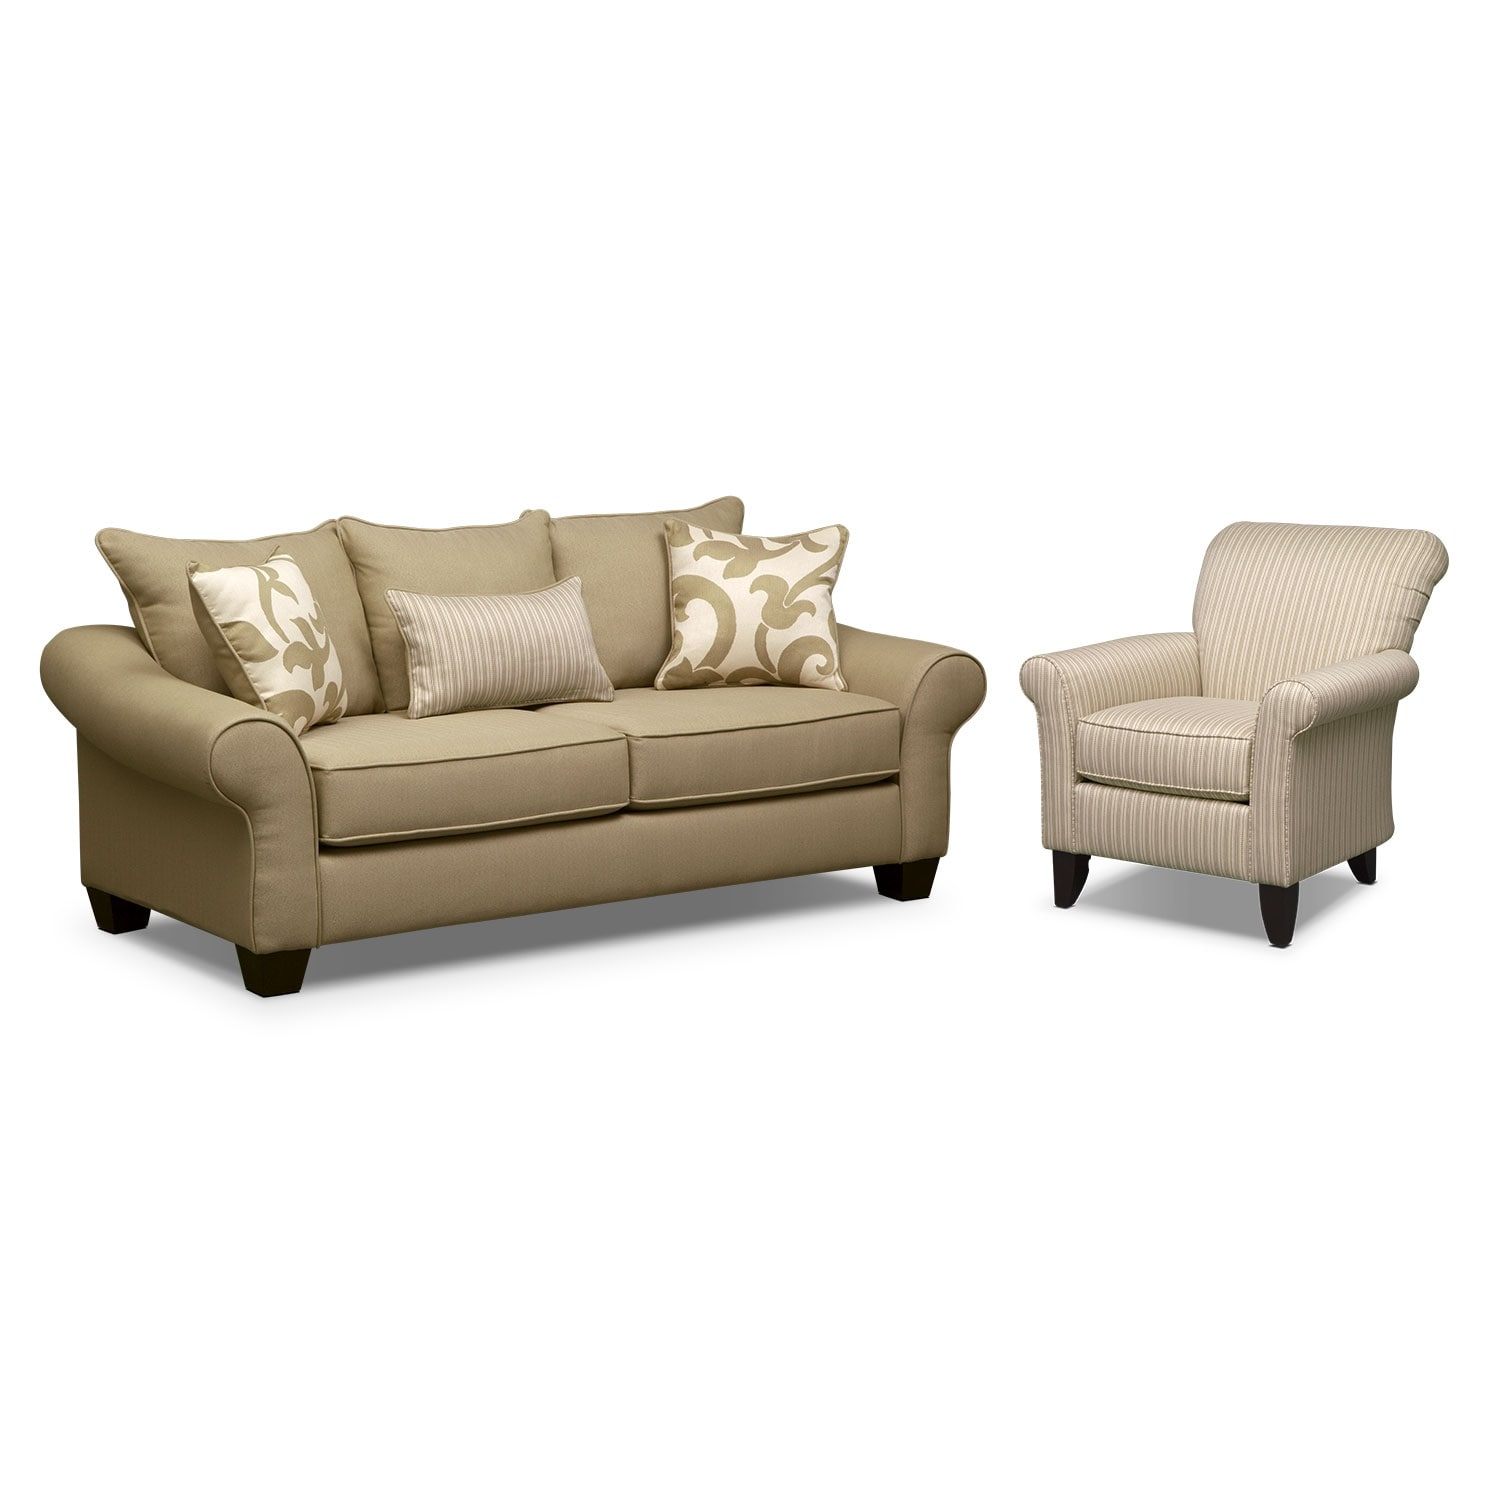 Colette Khaki 2 Pc Sleeper Living Room with Accent Chair